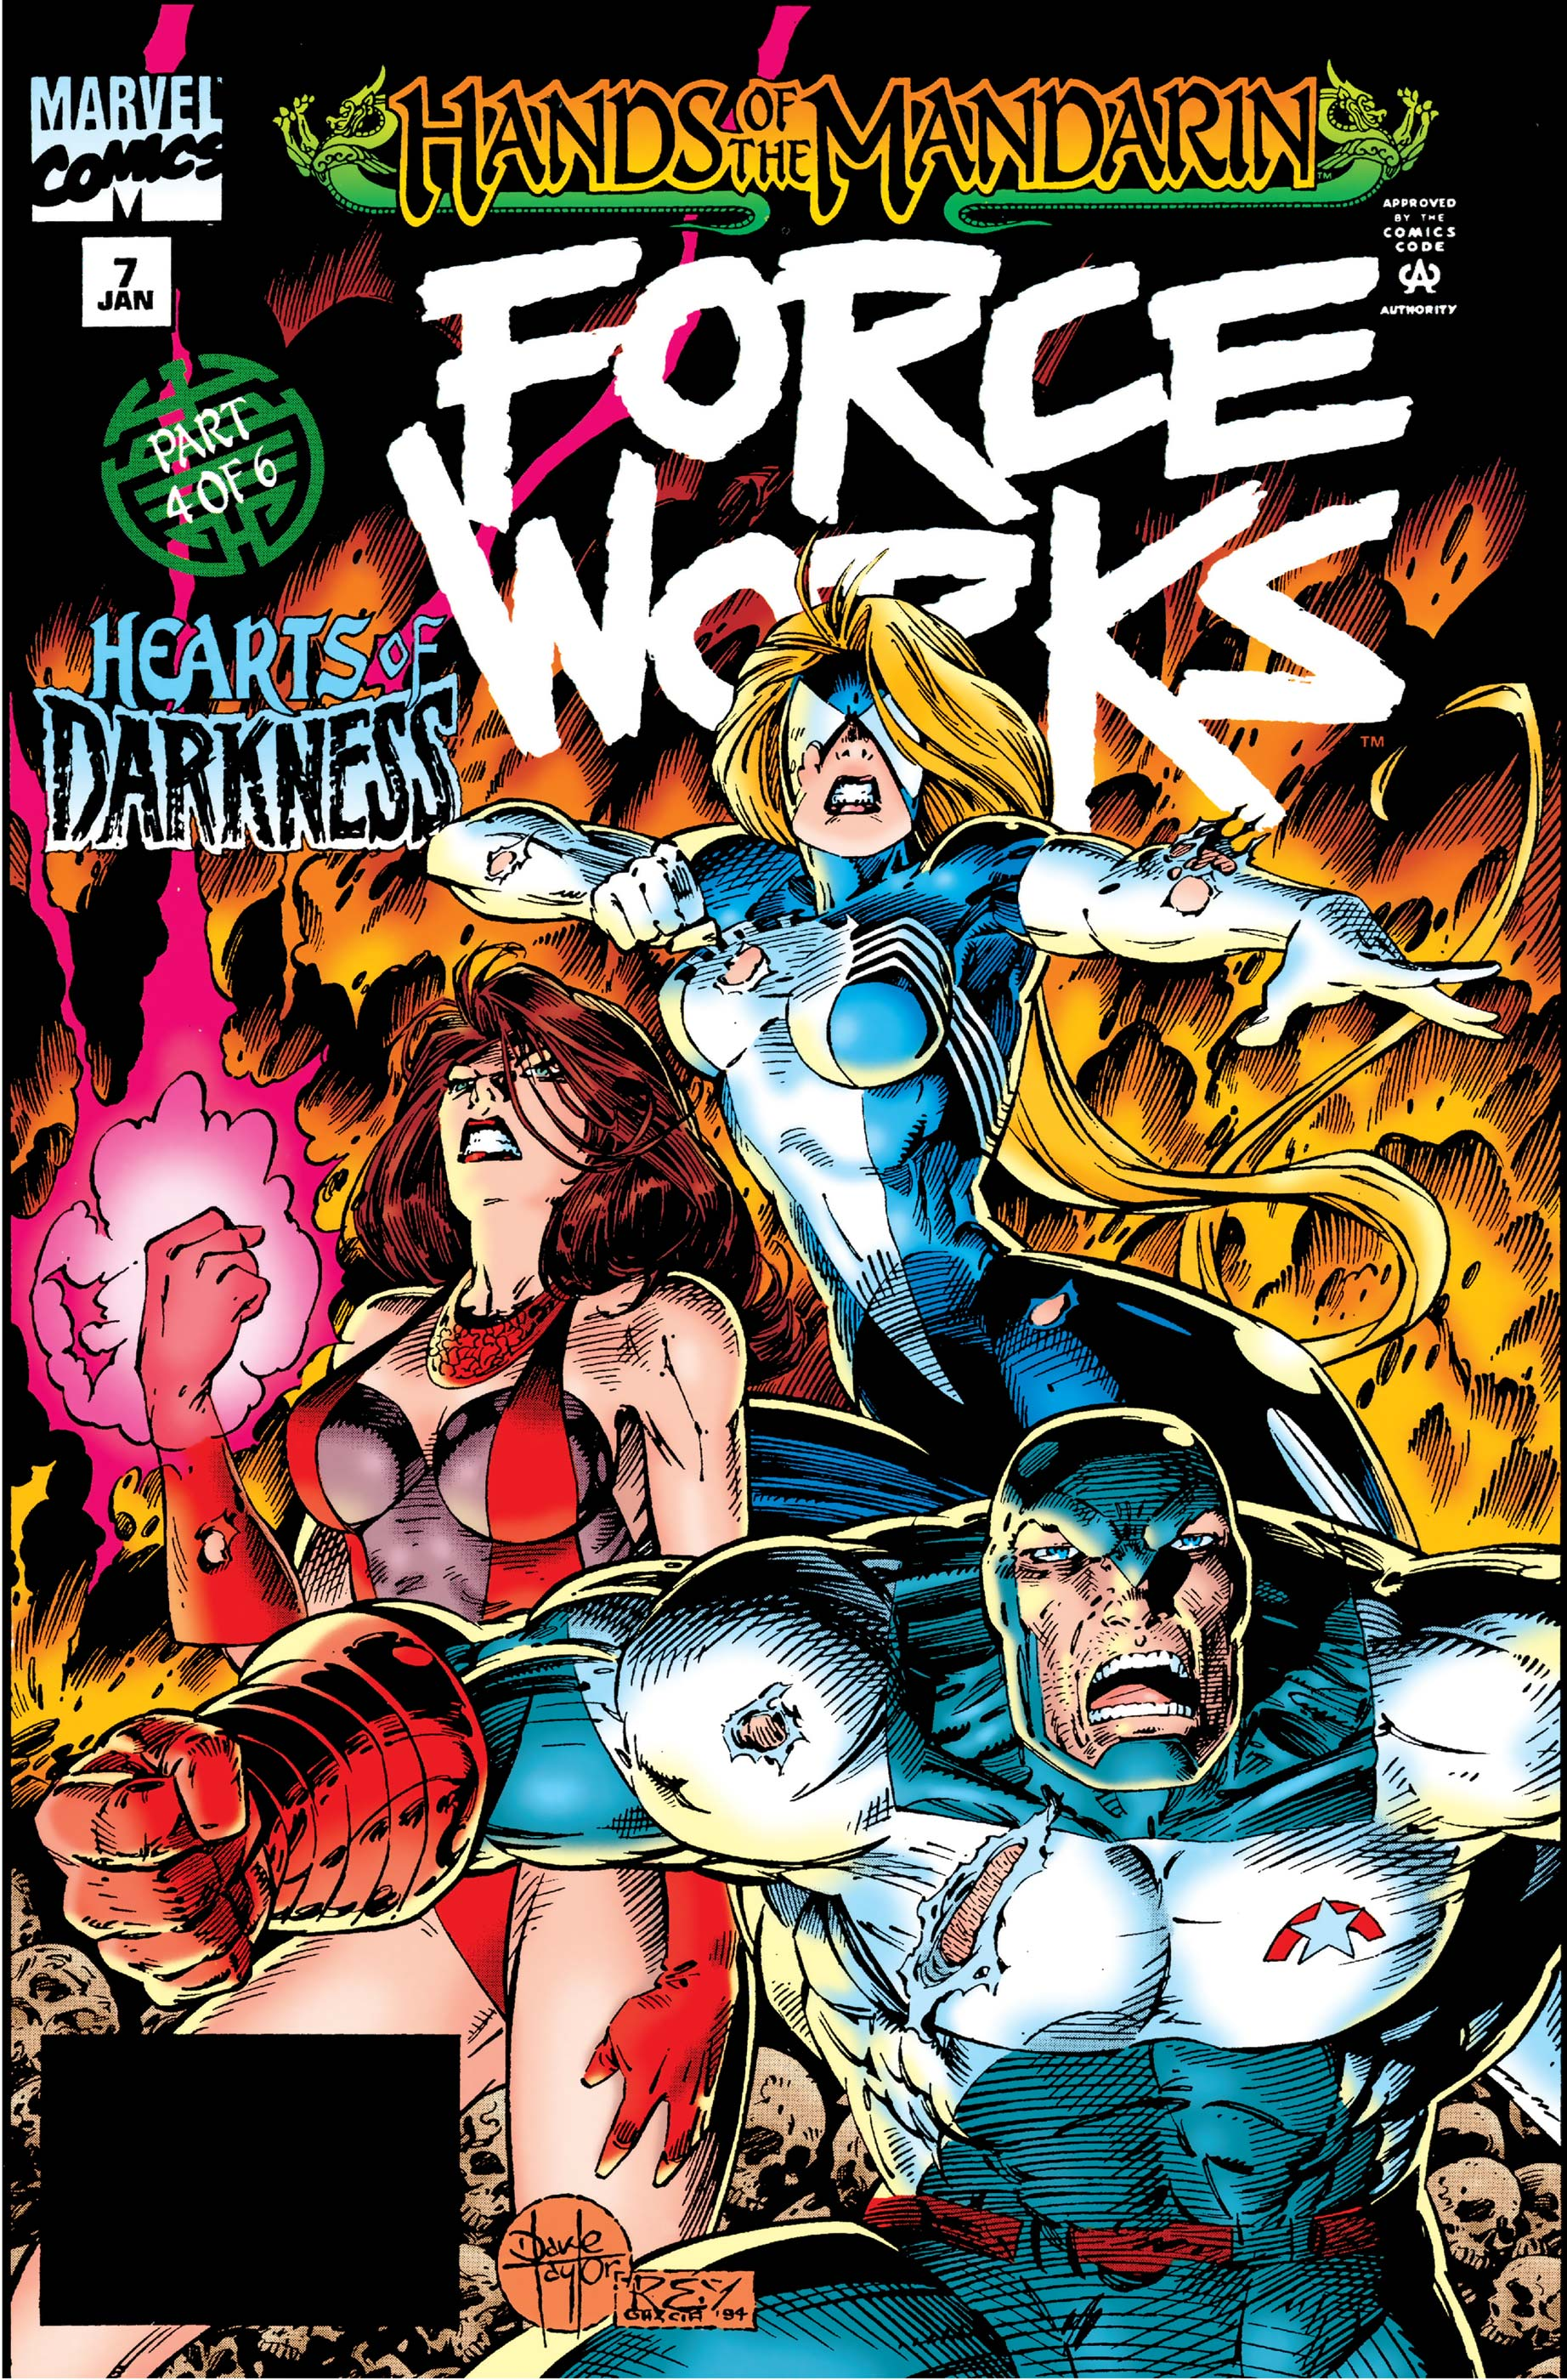 Force Works (1994) #7